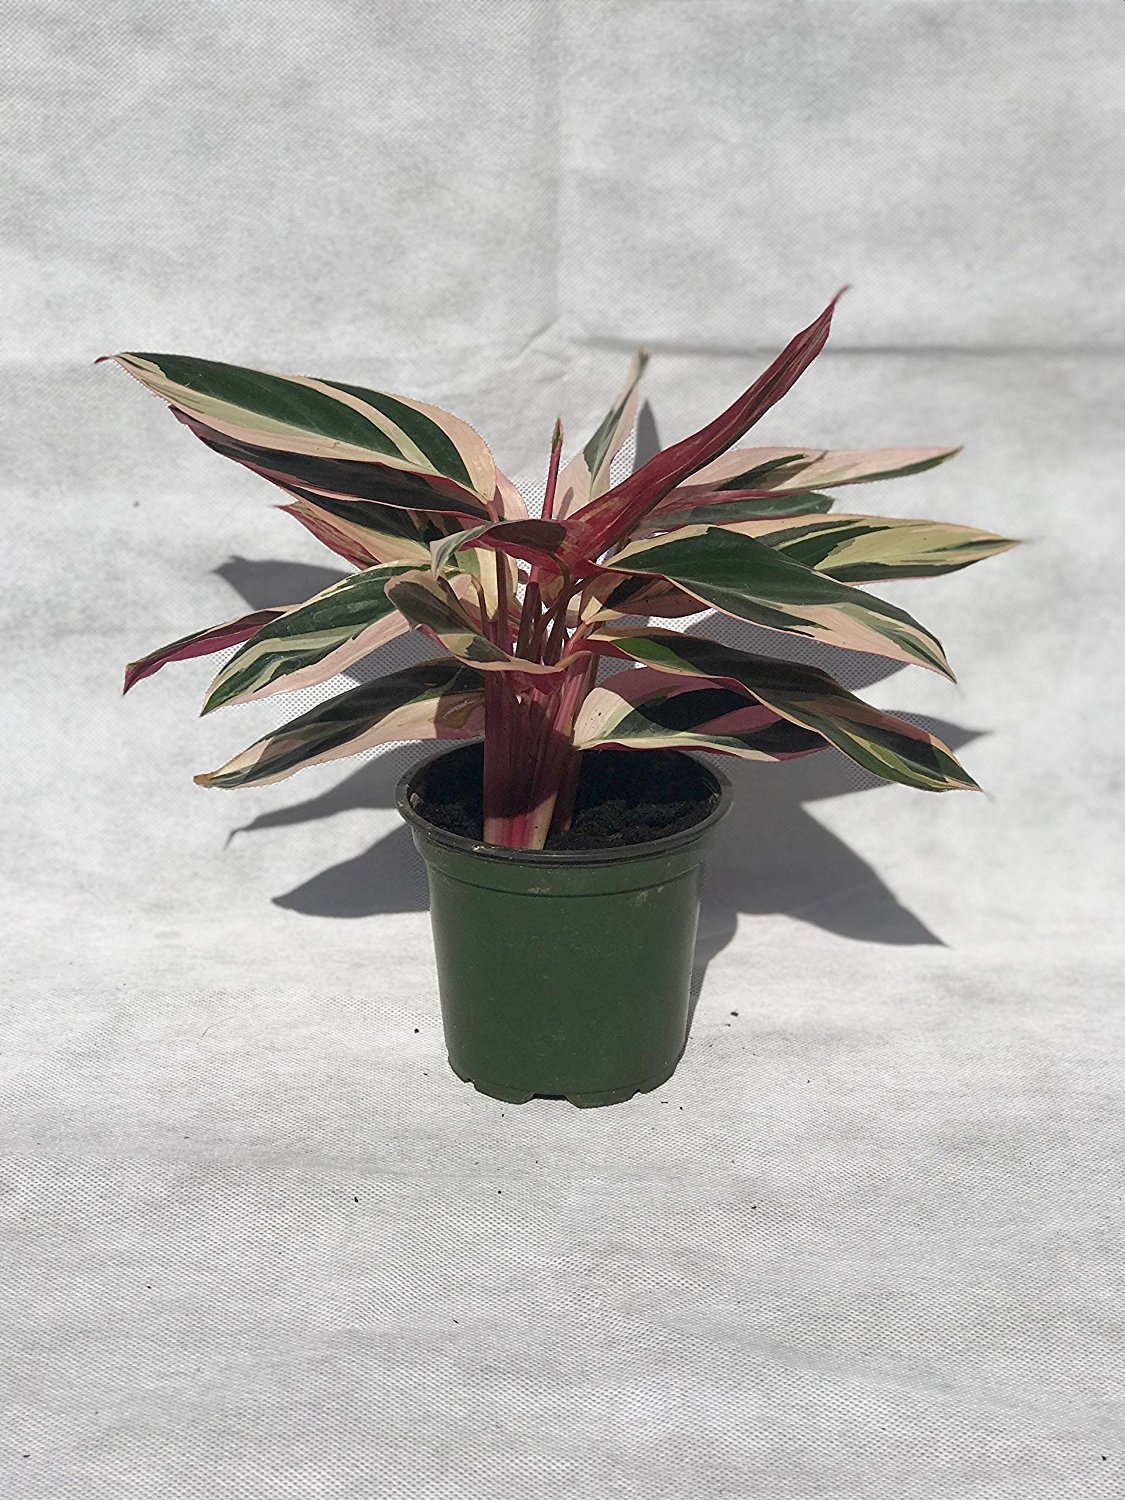 Collection of the Nine Best Clean Air Plants for your Home or Office - Florist Quality - Live Plants by Florida Foliage (Image #5)